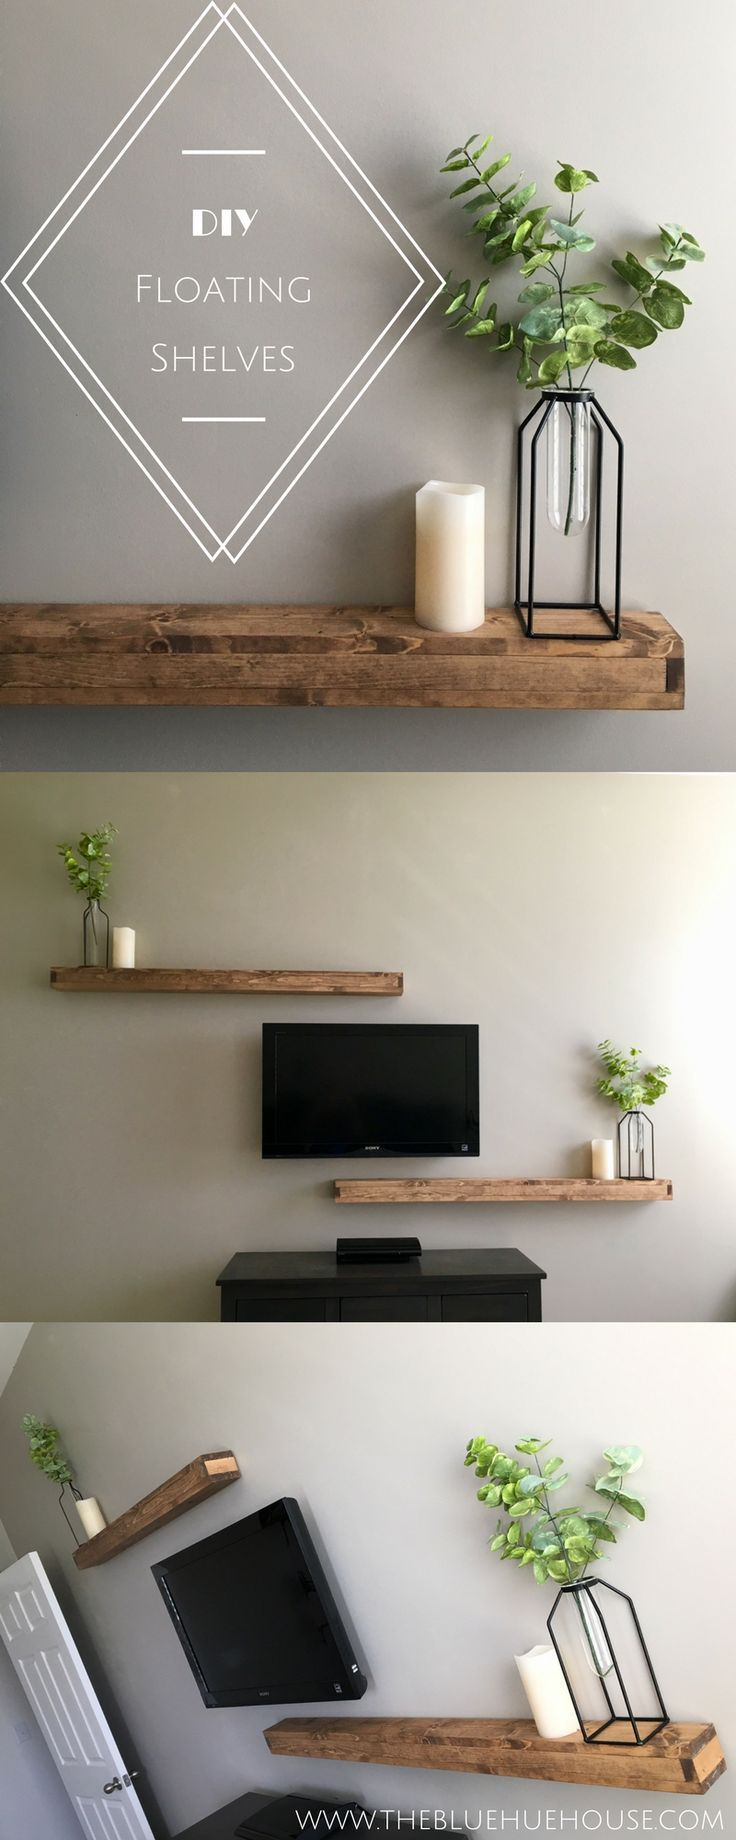 prodigious useful ideas white floating shelves built ins living room shelf under apartment therapy above couch interior design wall cleat thin shelving units deep ornamental